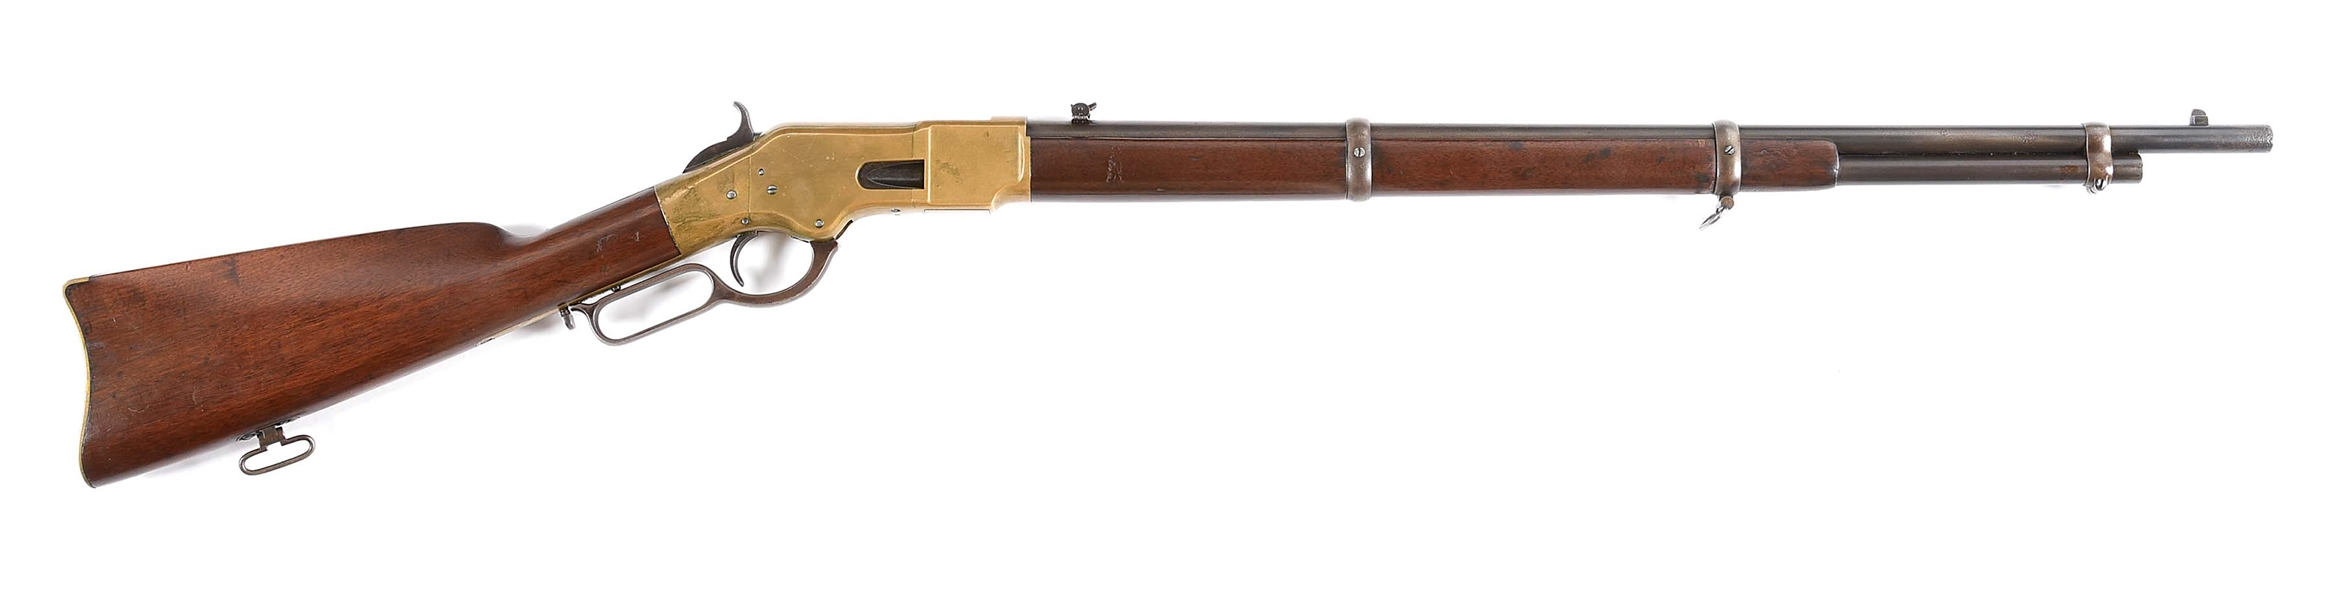 (A) WINCHESTER MODEL 1866 LOUISIANA STATE MILITIA LEVER-ACTION RIFLE IN .44 HENRY RIMFIRE.